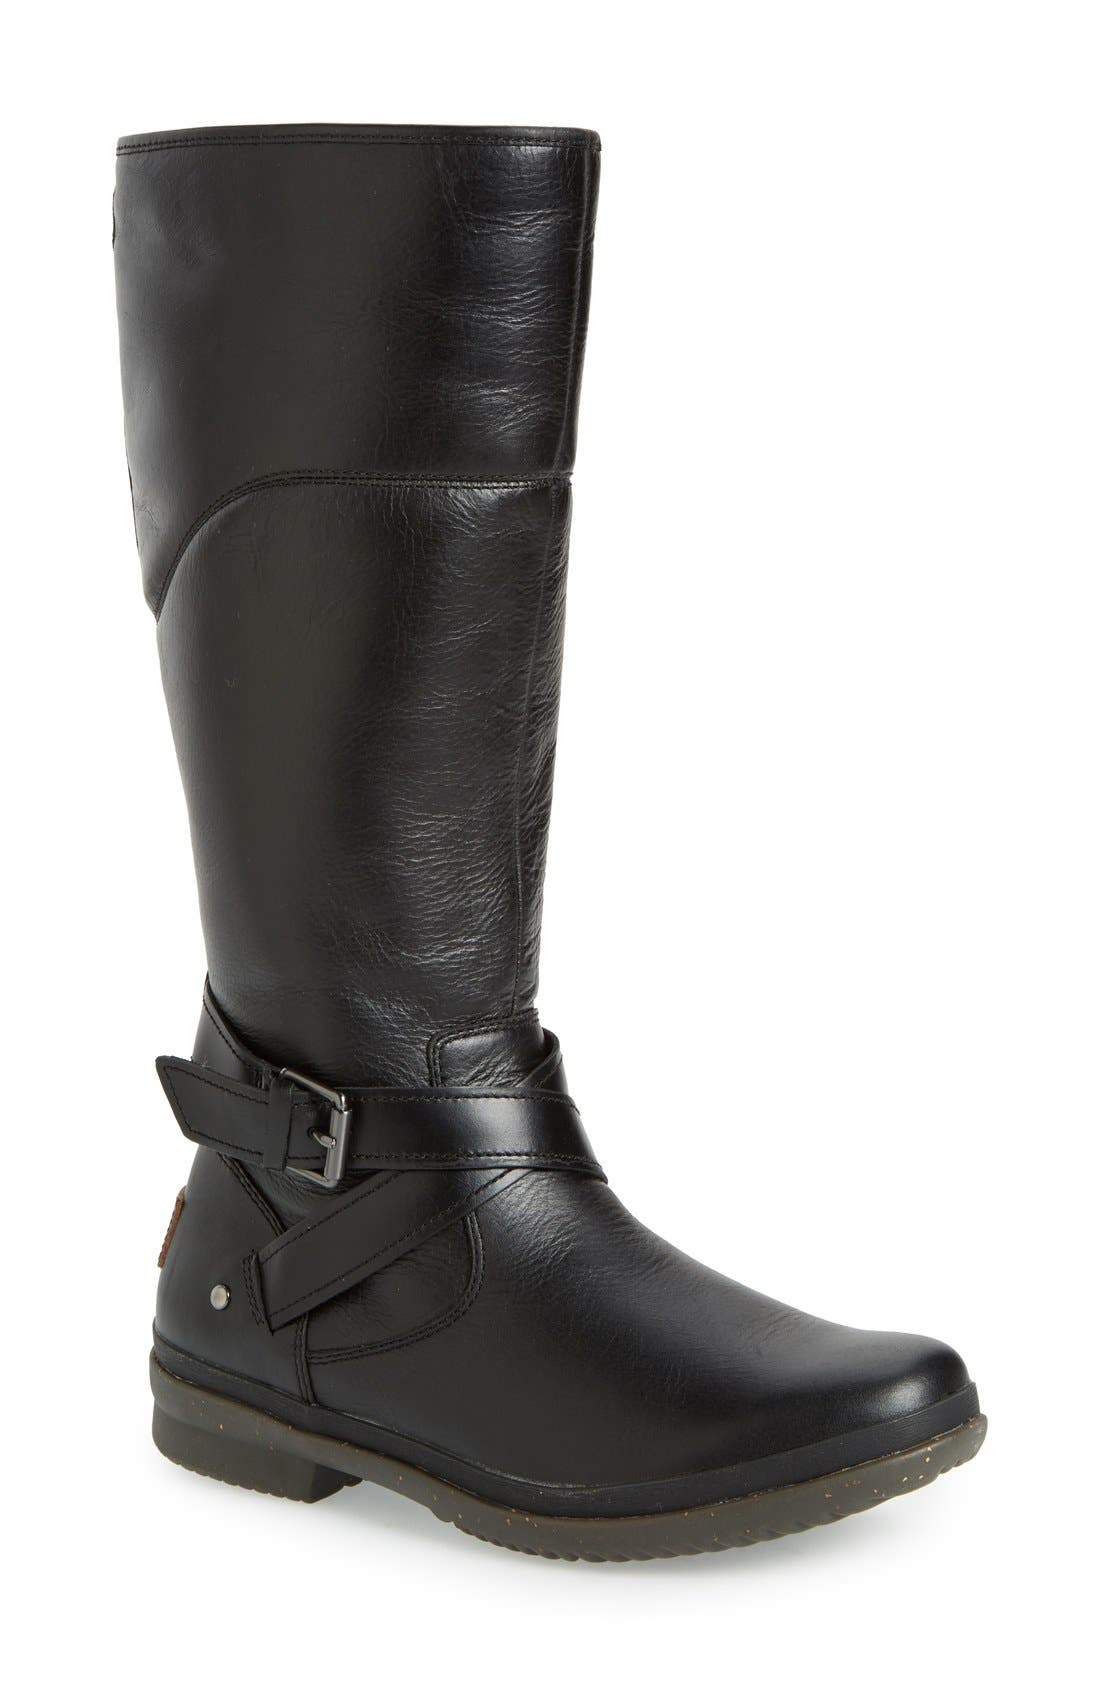 Alternate Image 1 Selected - UGG® Evanna Riding Boot (Women)